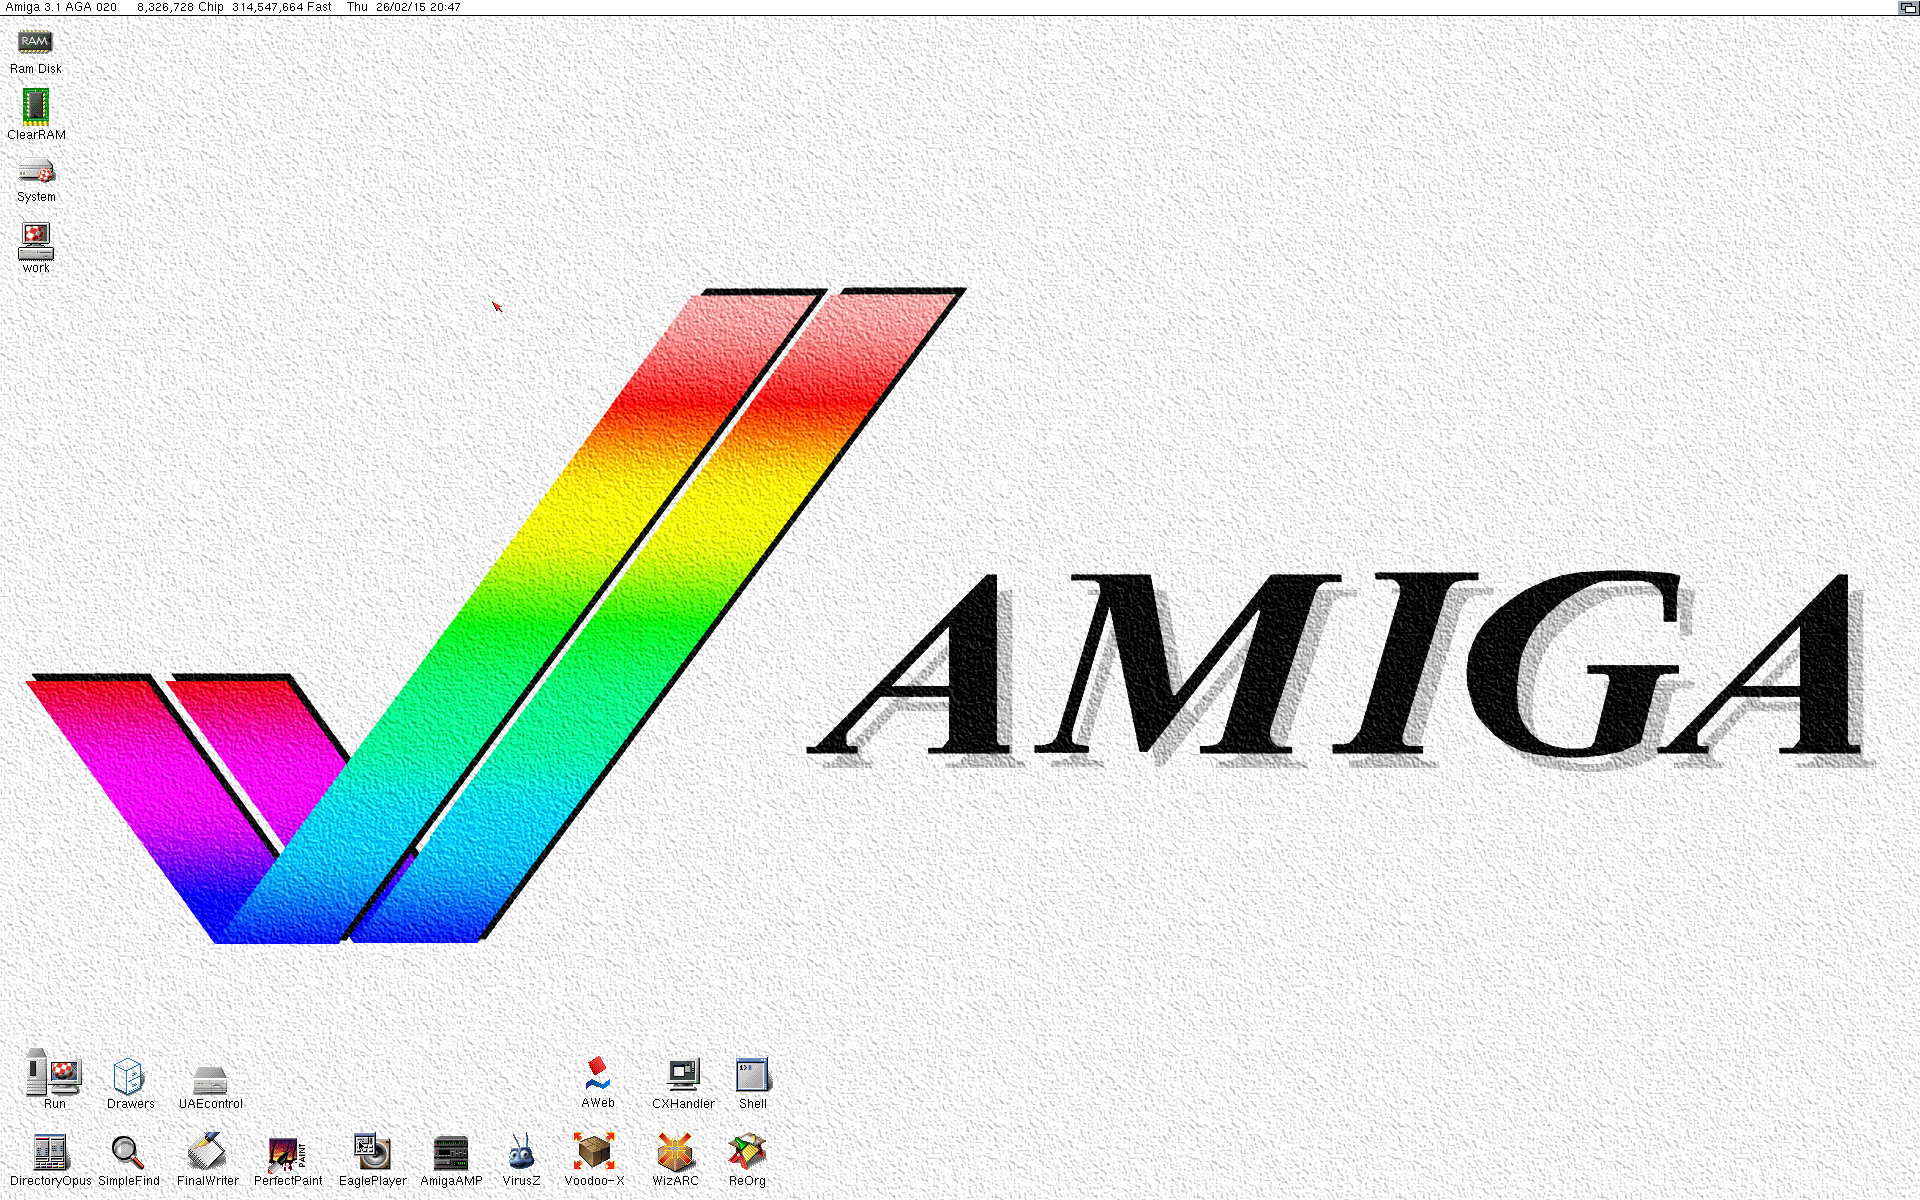 Amiga HD Workbench 3.1 desktop emulated on WinUAE